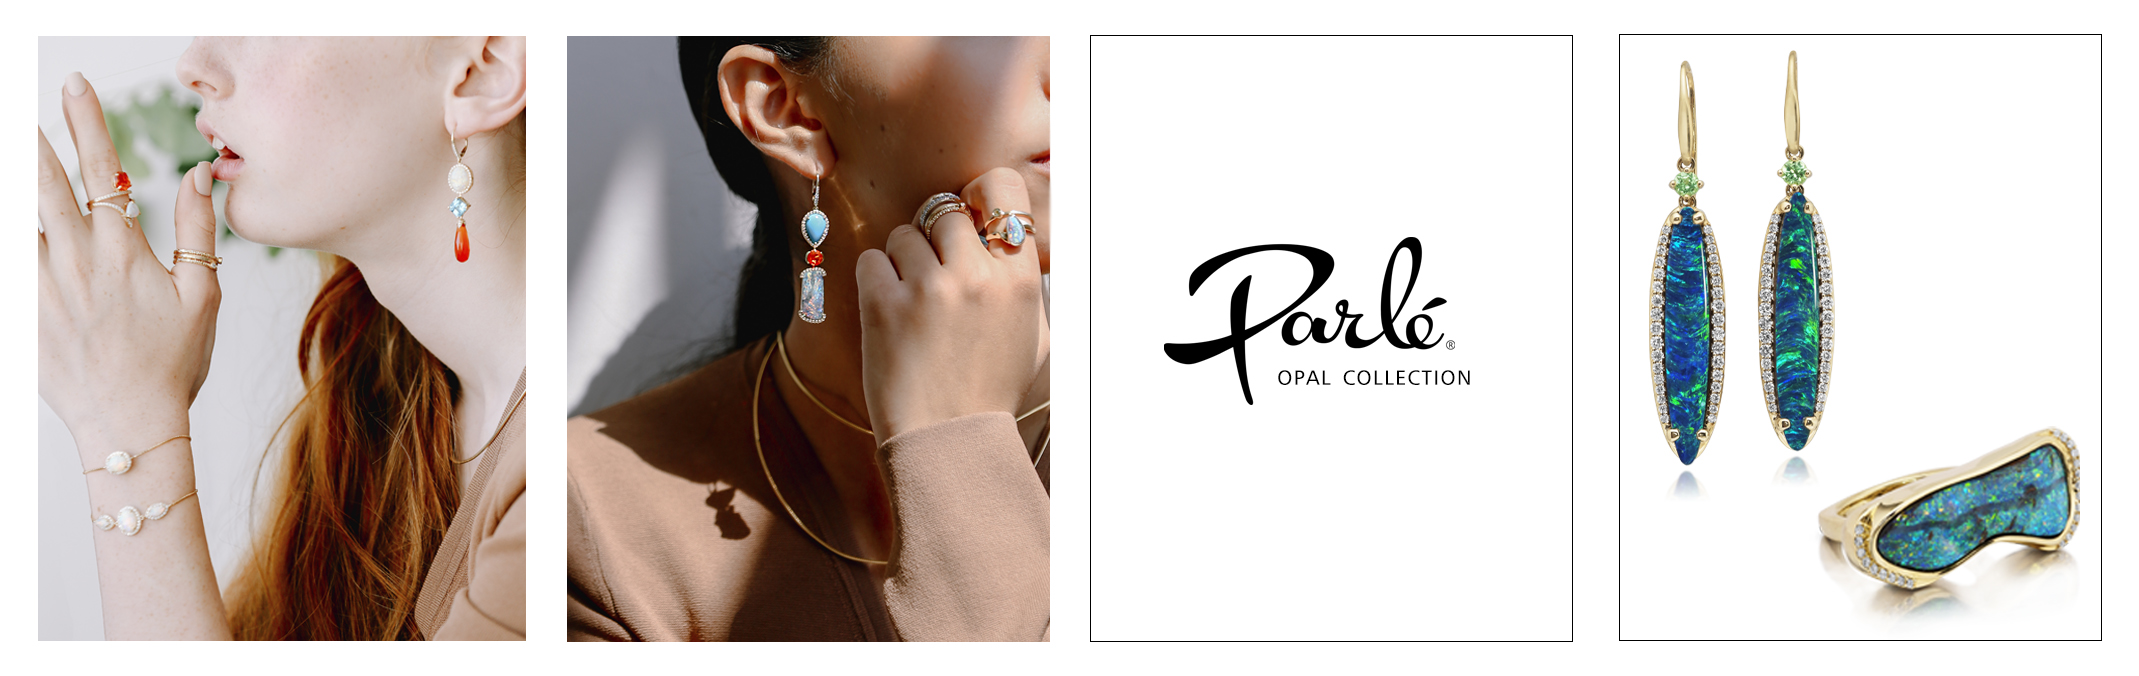 Parle Opal Collection Banner